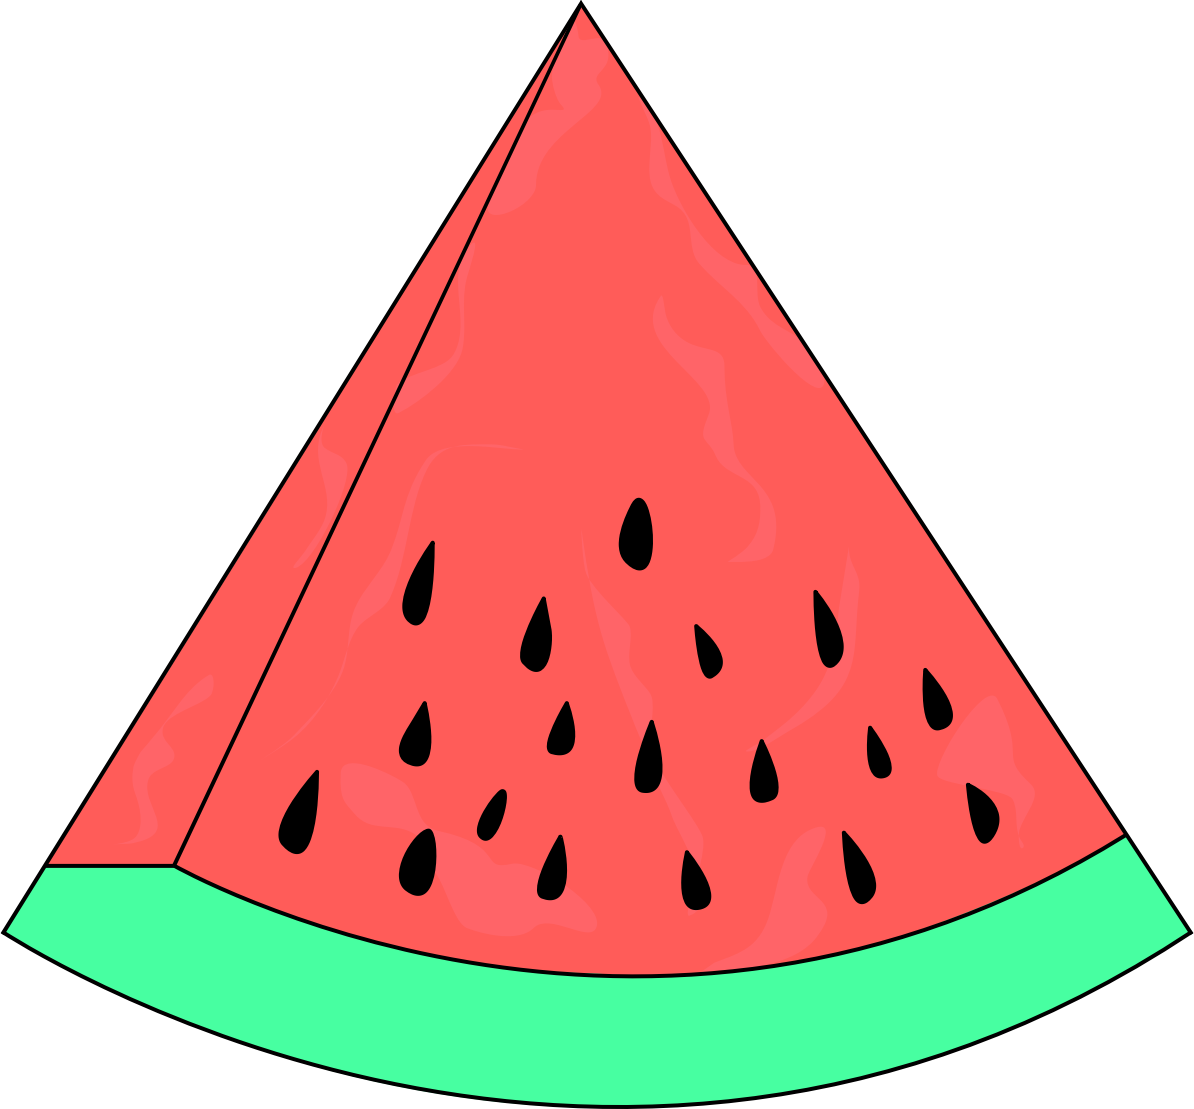 Watermelon clip art fruit 2